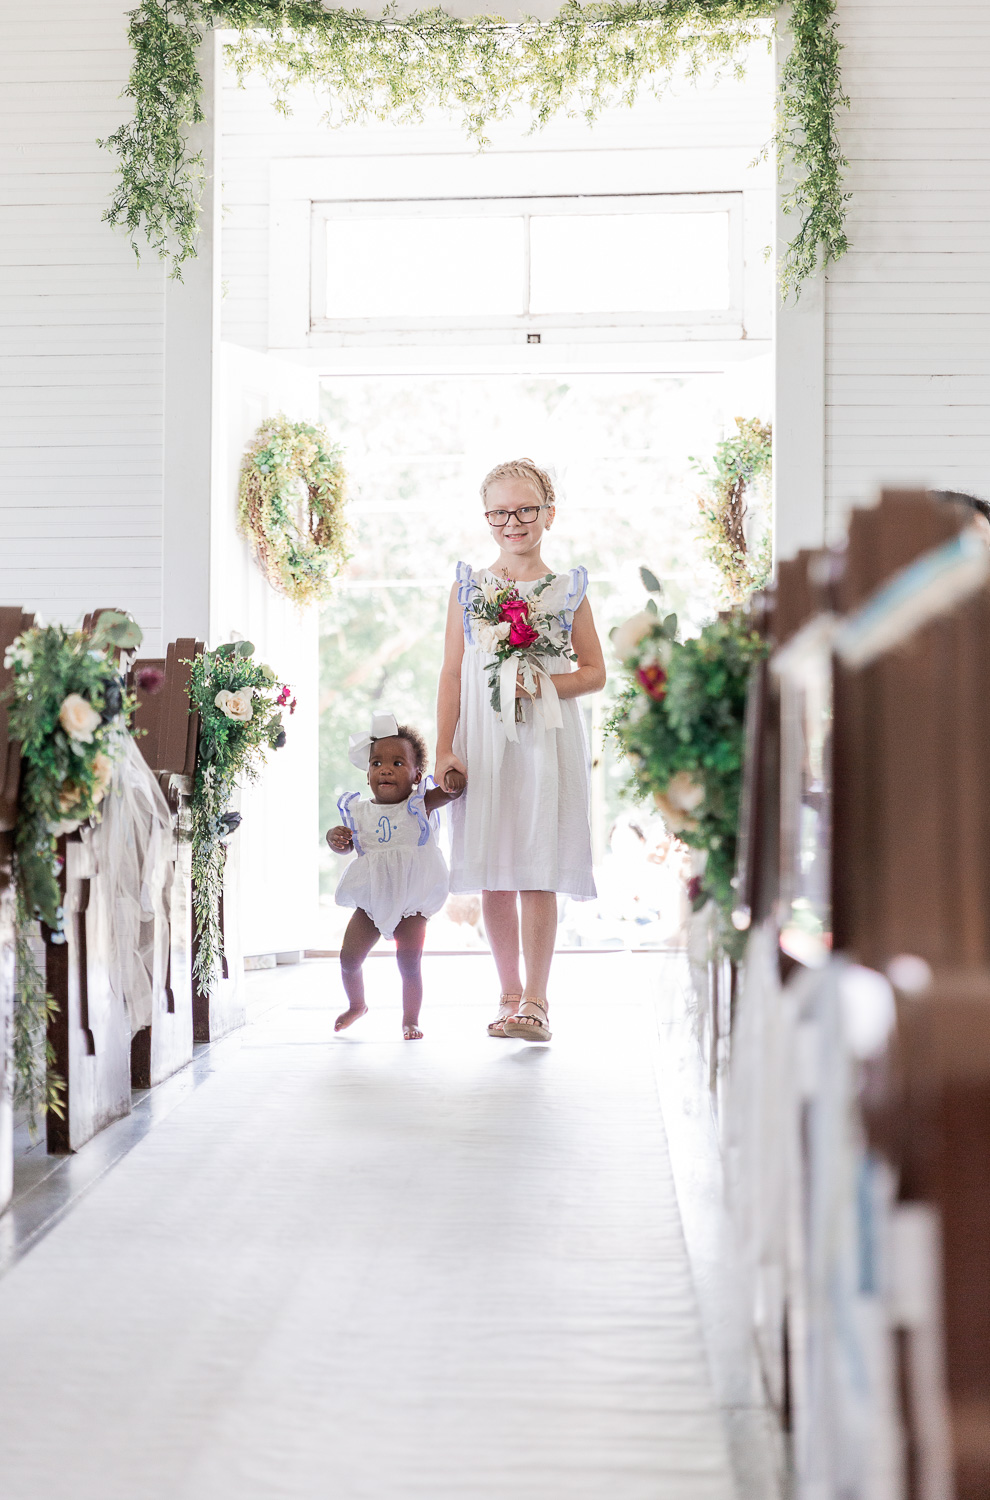 Annie Elise Photography | Ceremony | Clark's Chapel Inside | Flower Arbor | Slate Blue Wedding | Flower girls